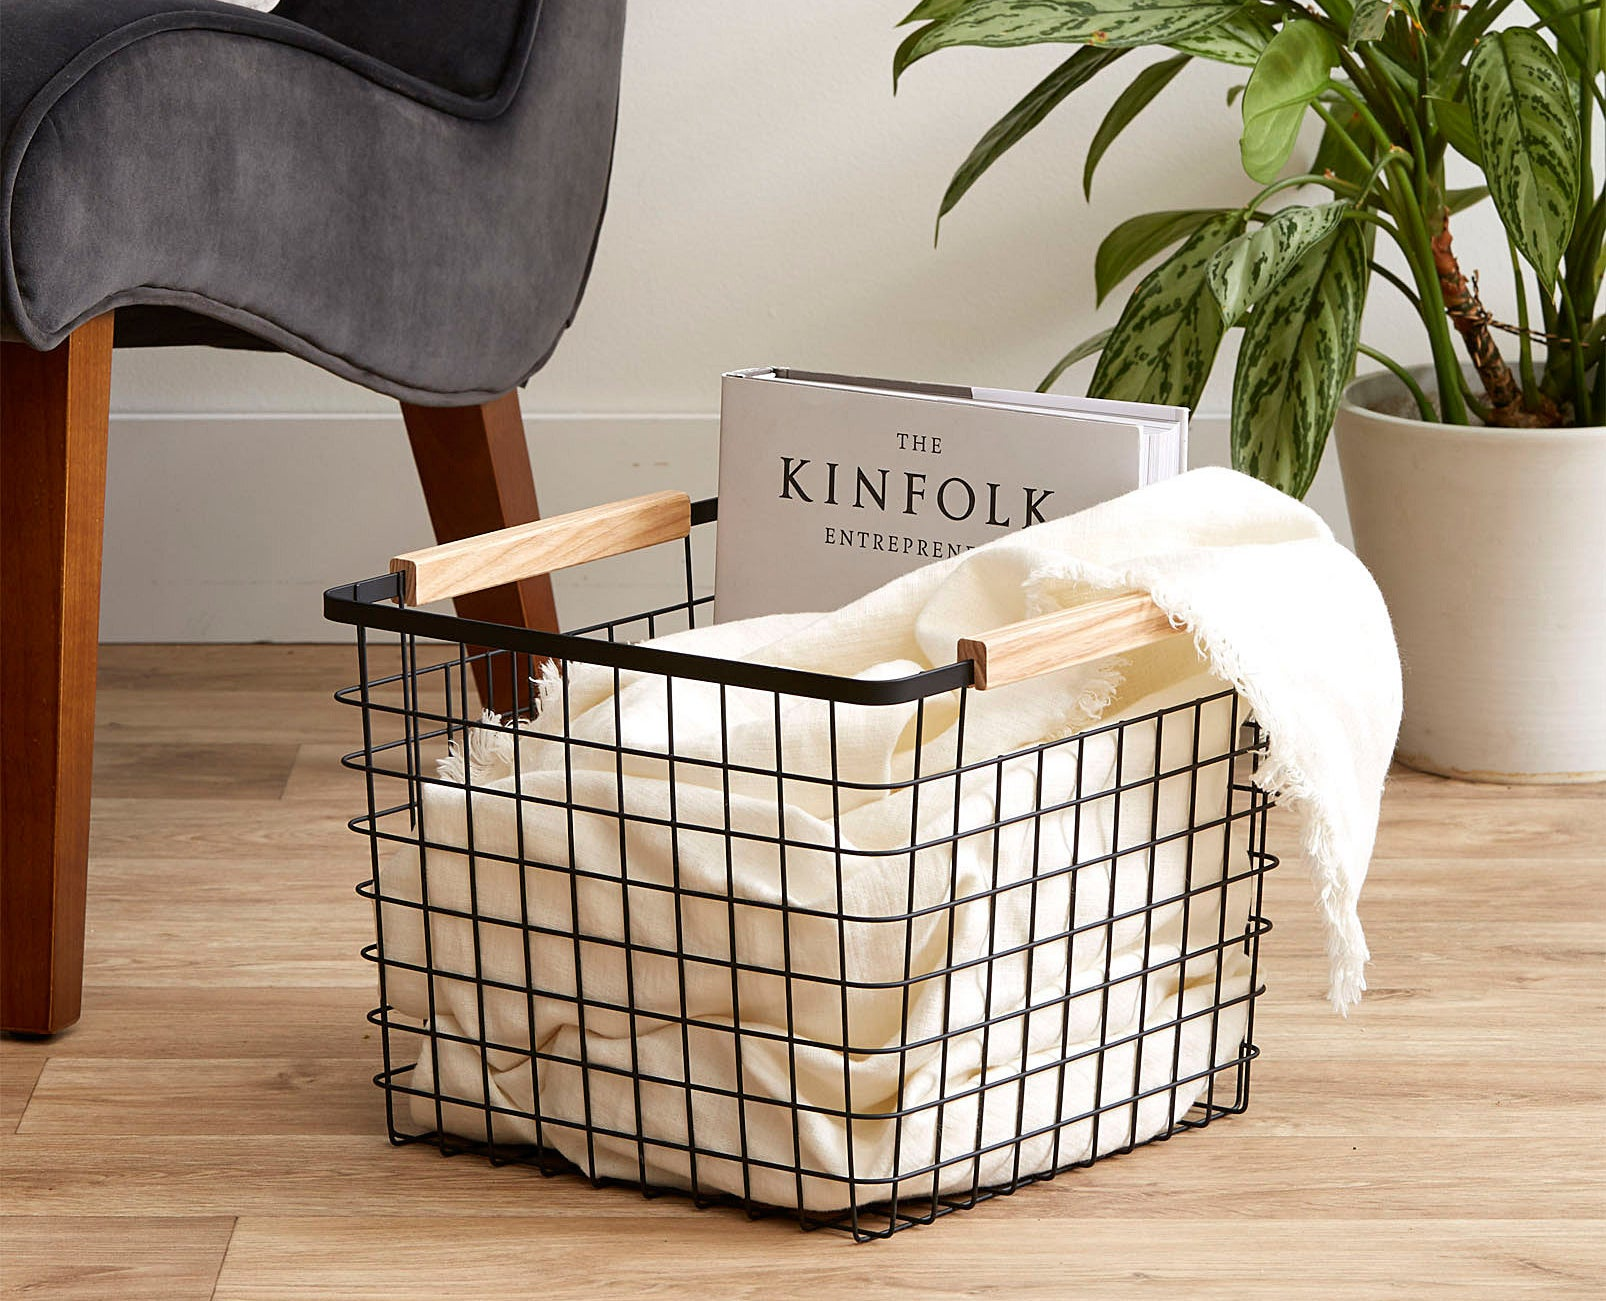 A metal wire basket with wooden handles There is a small blanket and a thick book inside